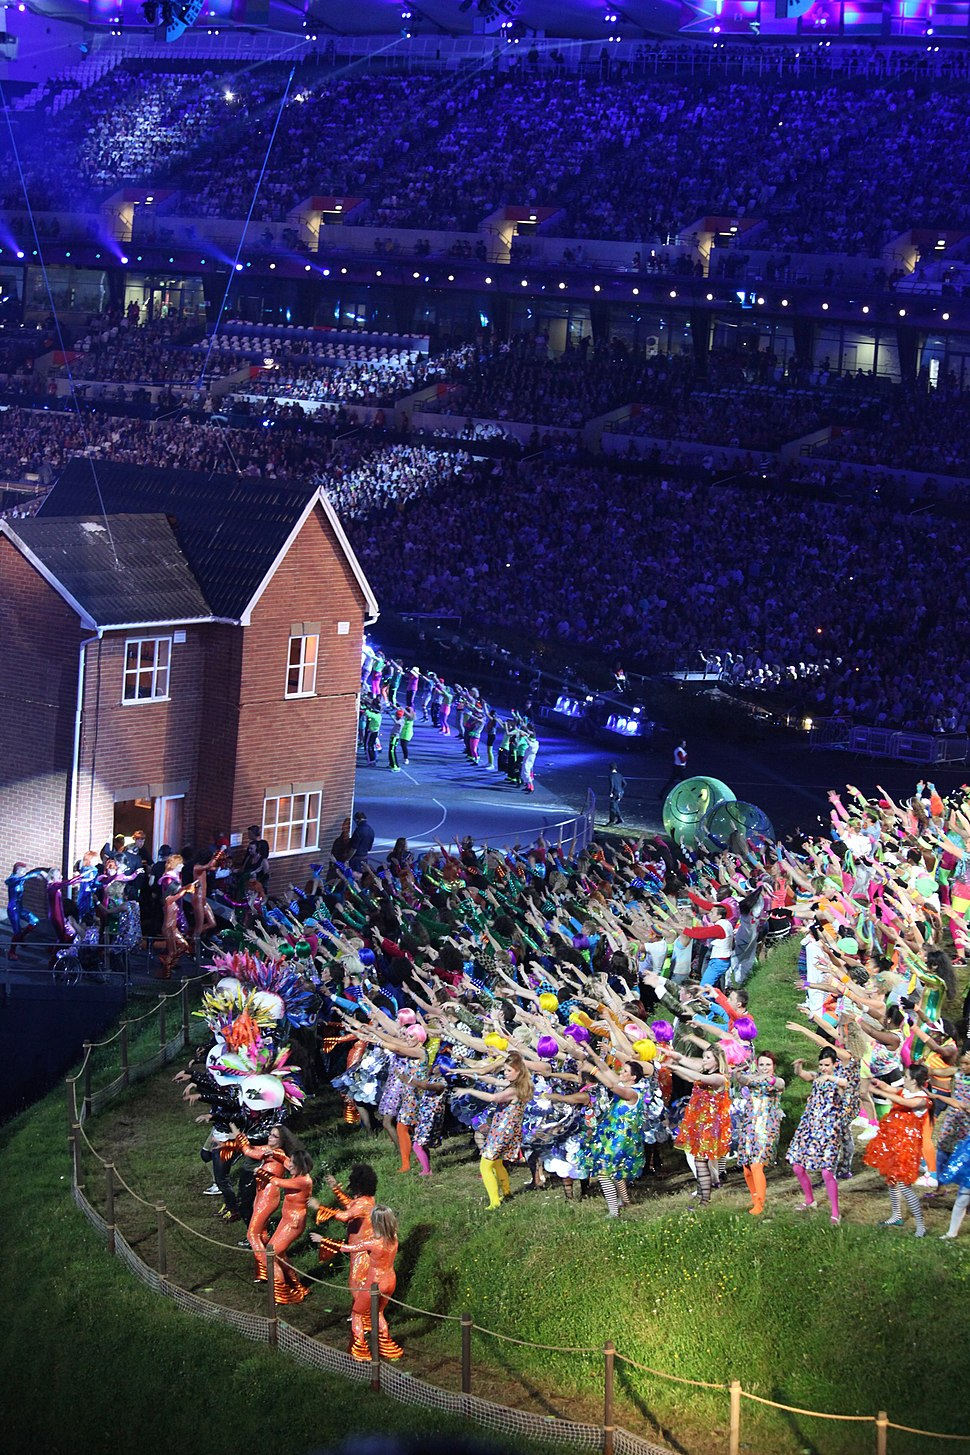 London 2012 Olympic Opening Ceremony - British Music section